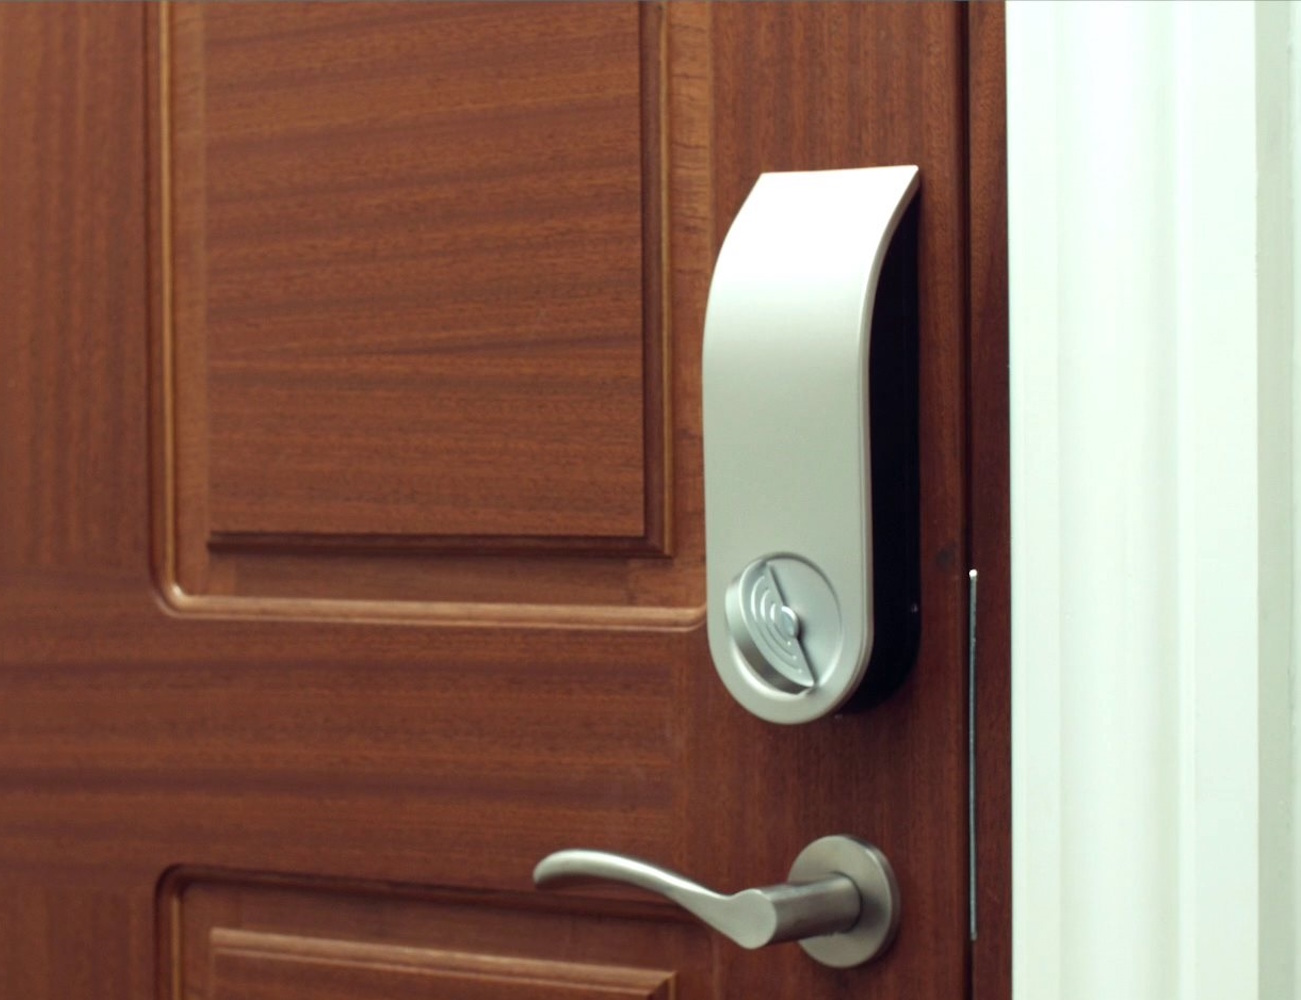 app-enabled-smart-door-lock-by-bekey-01